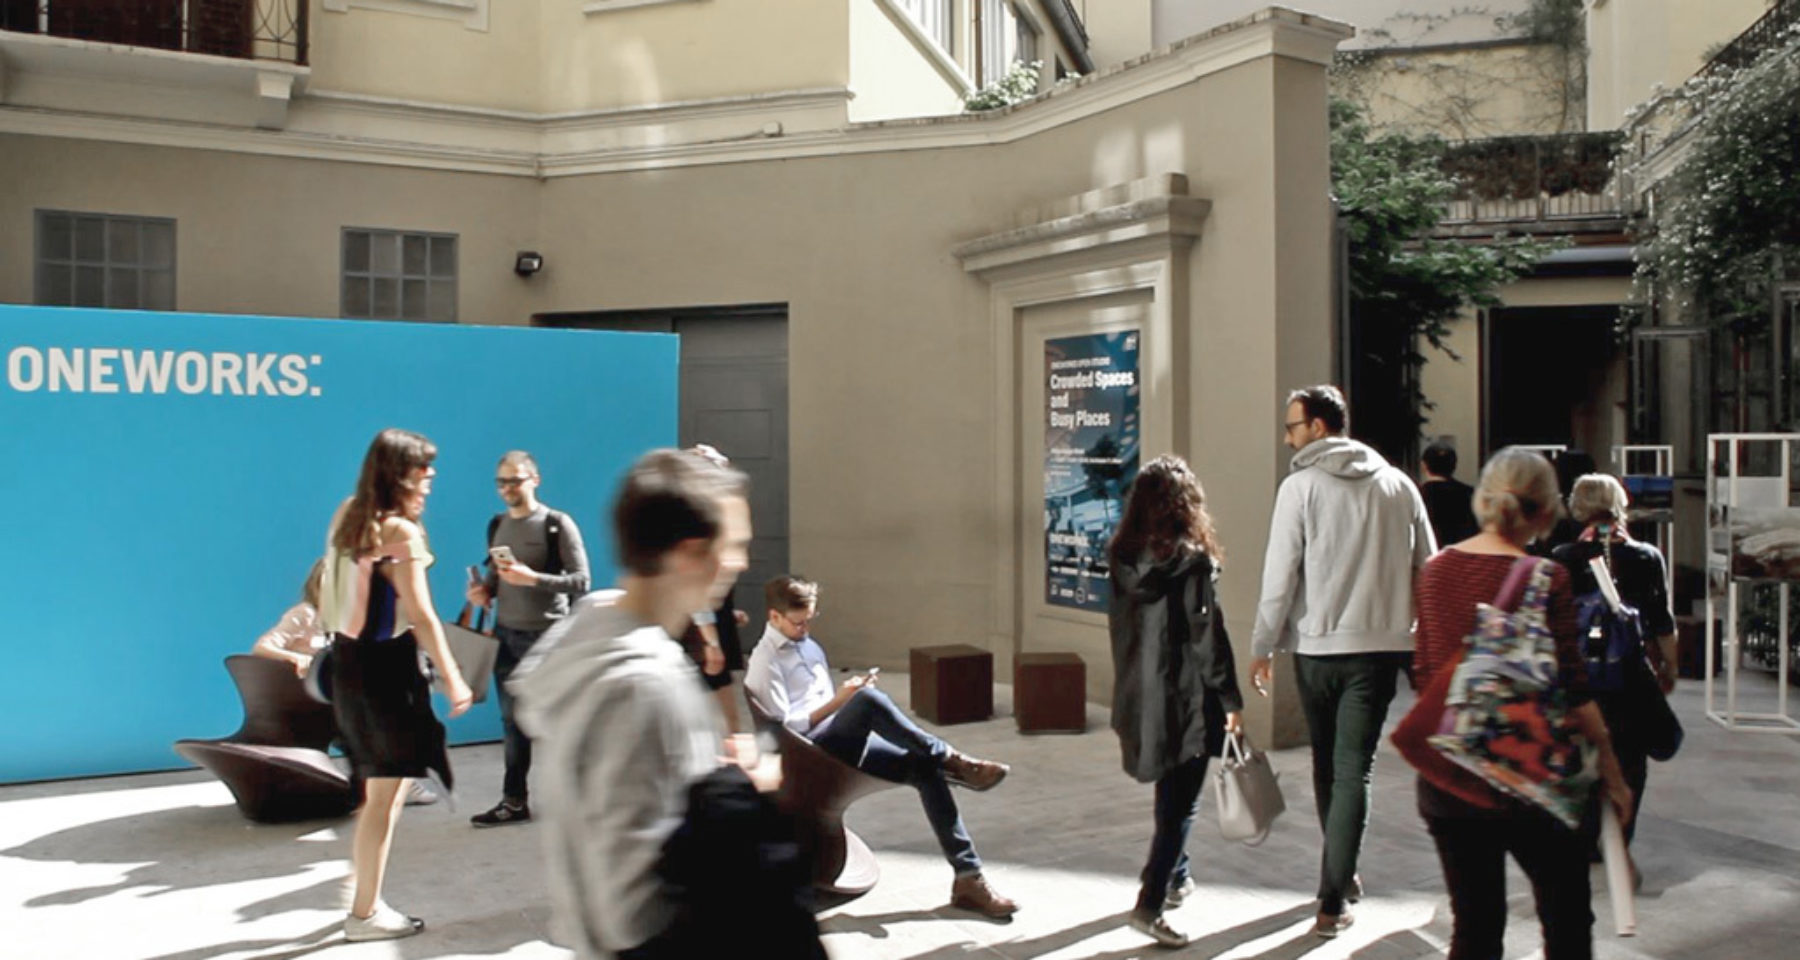 Milan Design Week: Thanks for visiting our Crowded Spaces and Busy Places exhibition